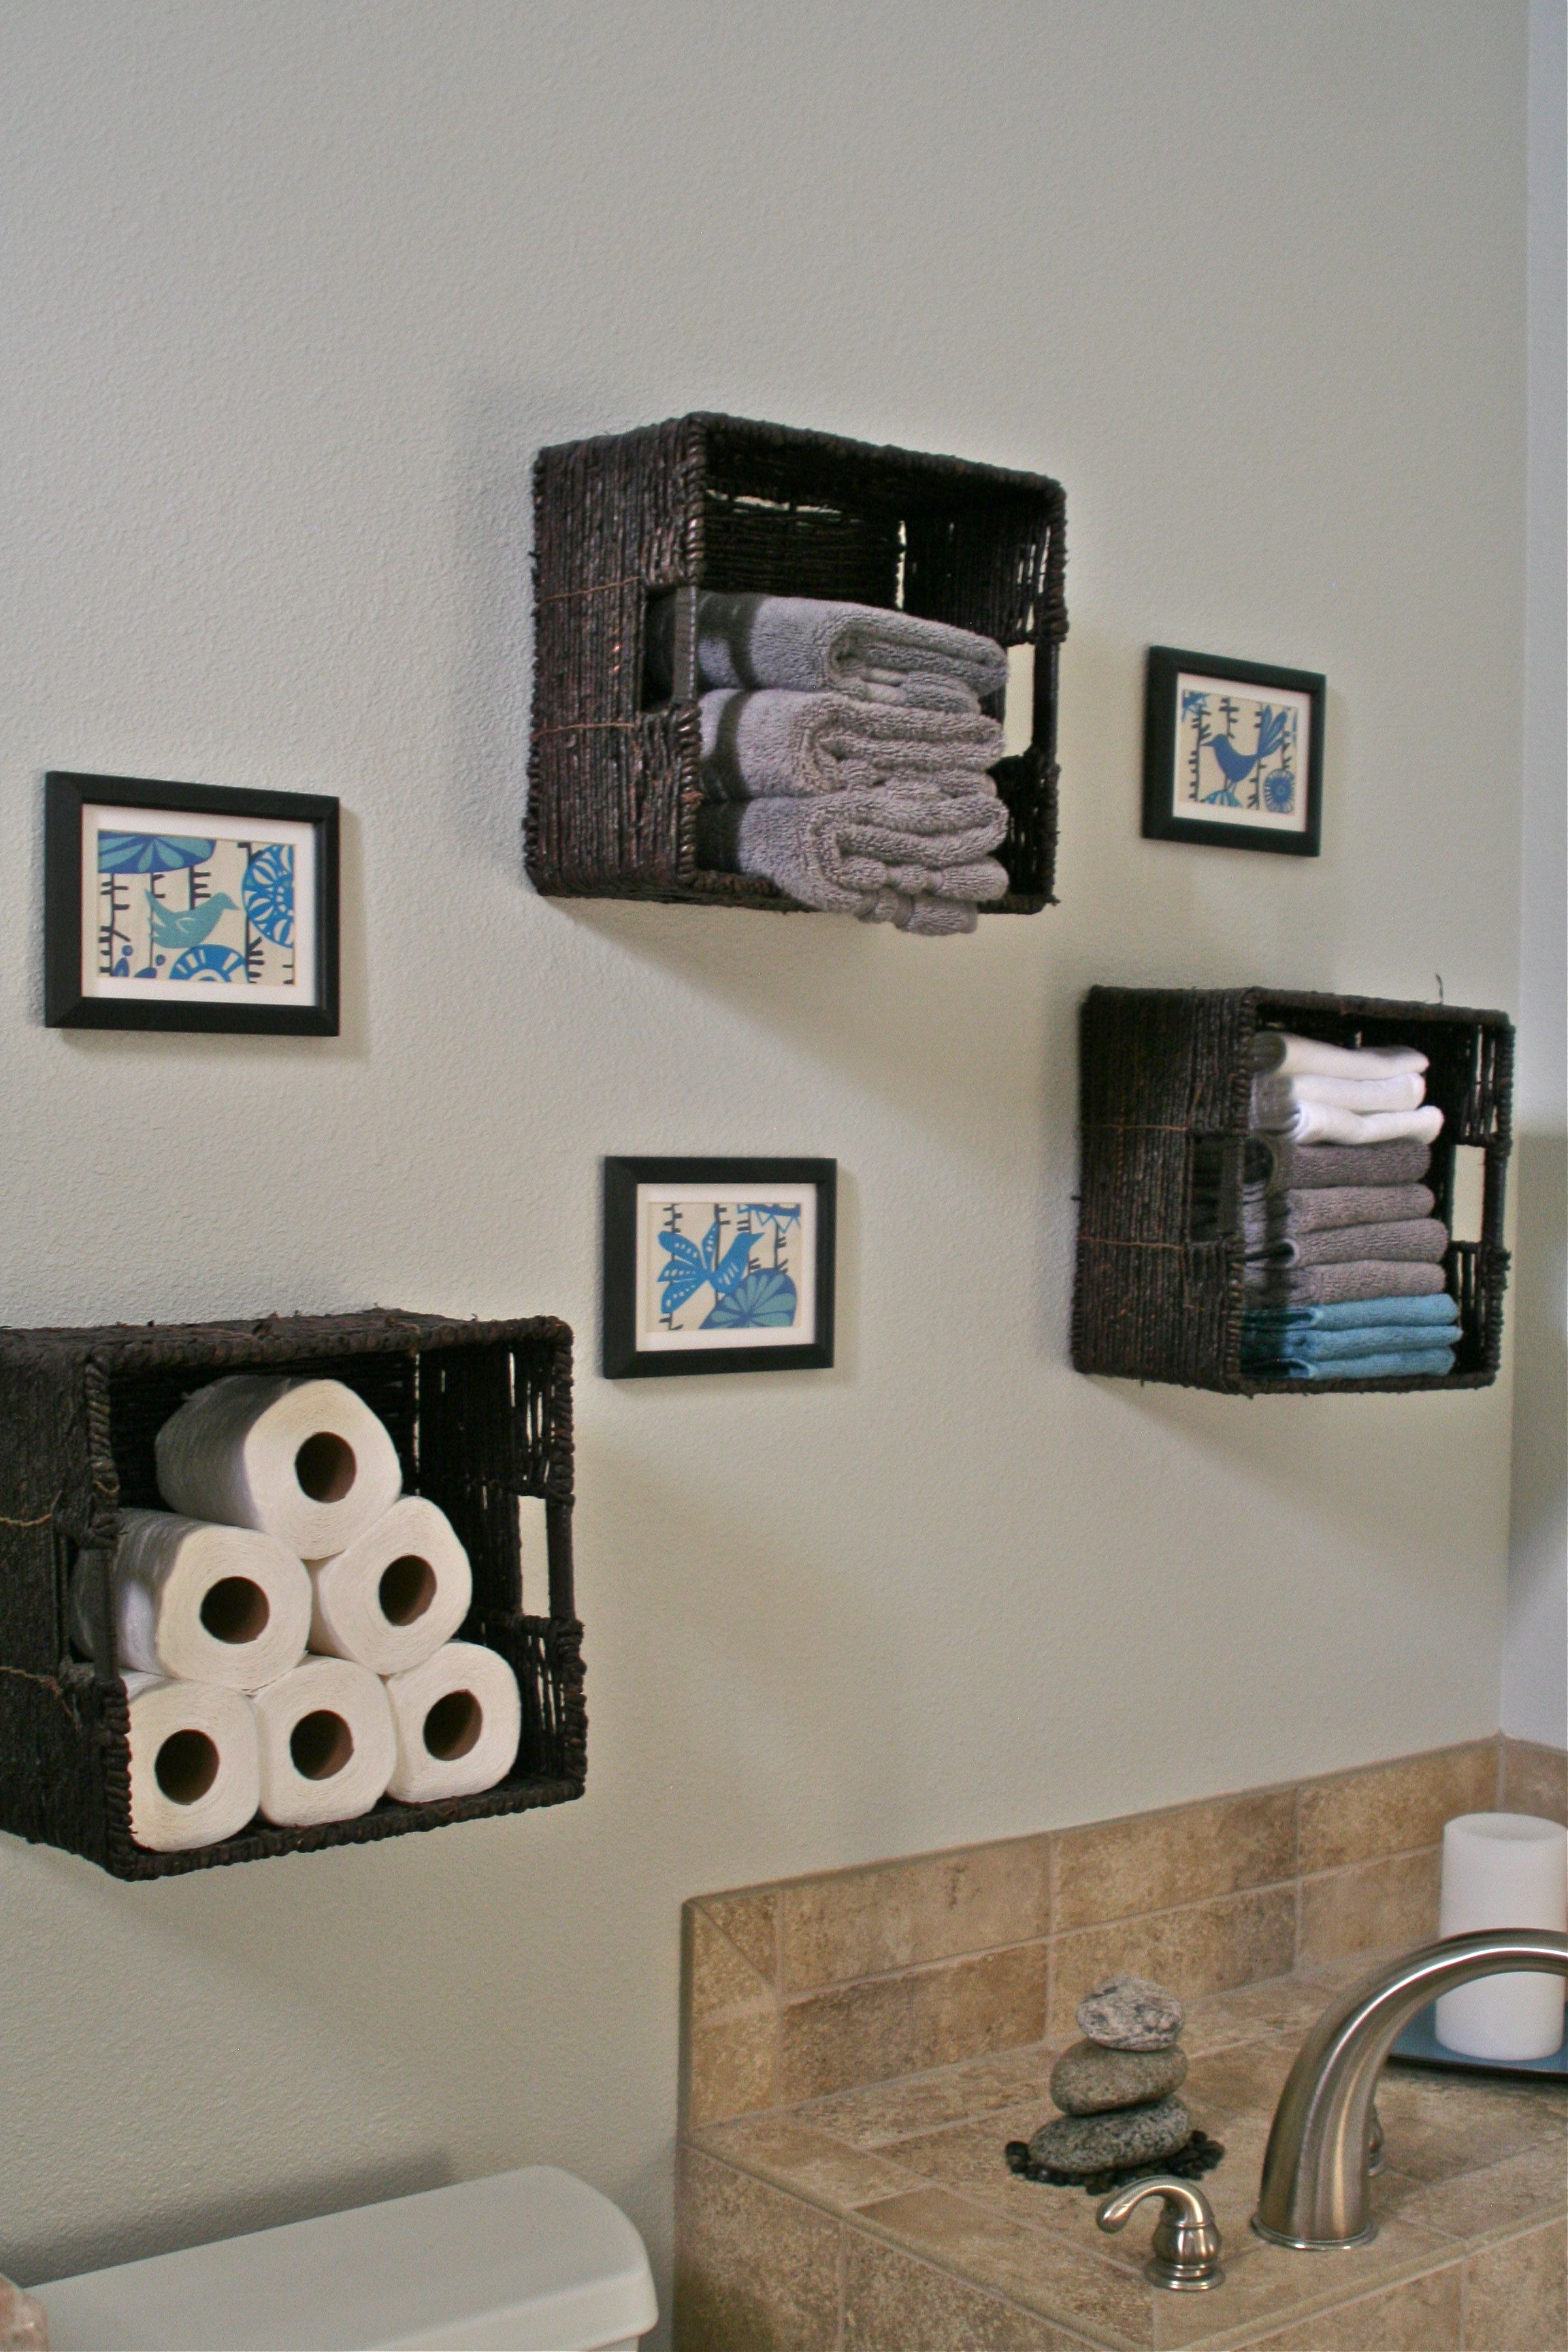 Bathroom Storage Baskets For Towels Toilet Paper Etc Love within dimensions 2304 X 3456